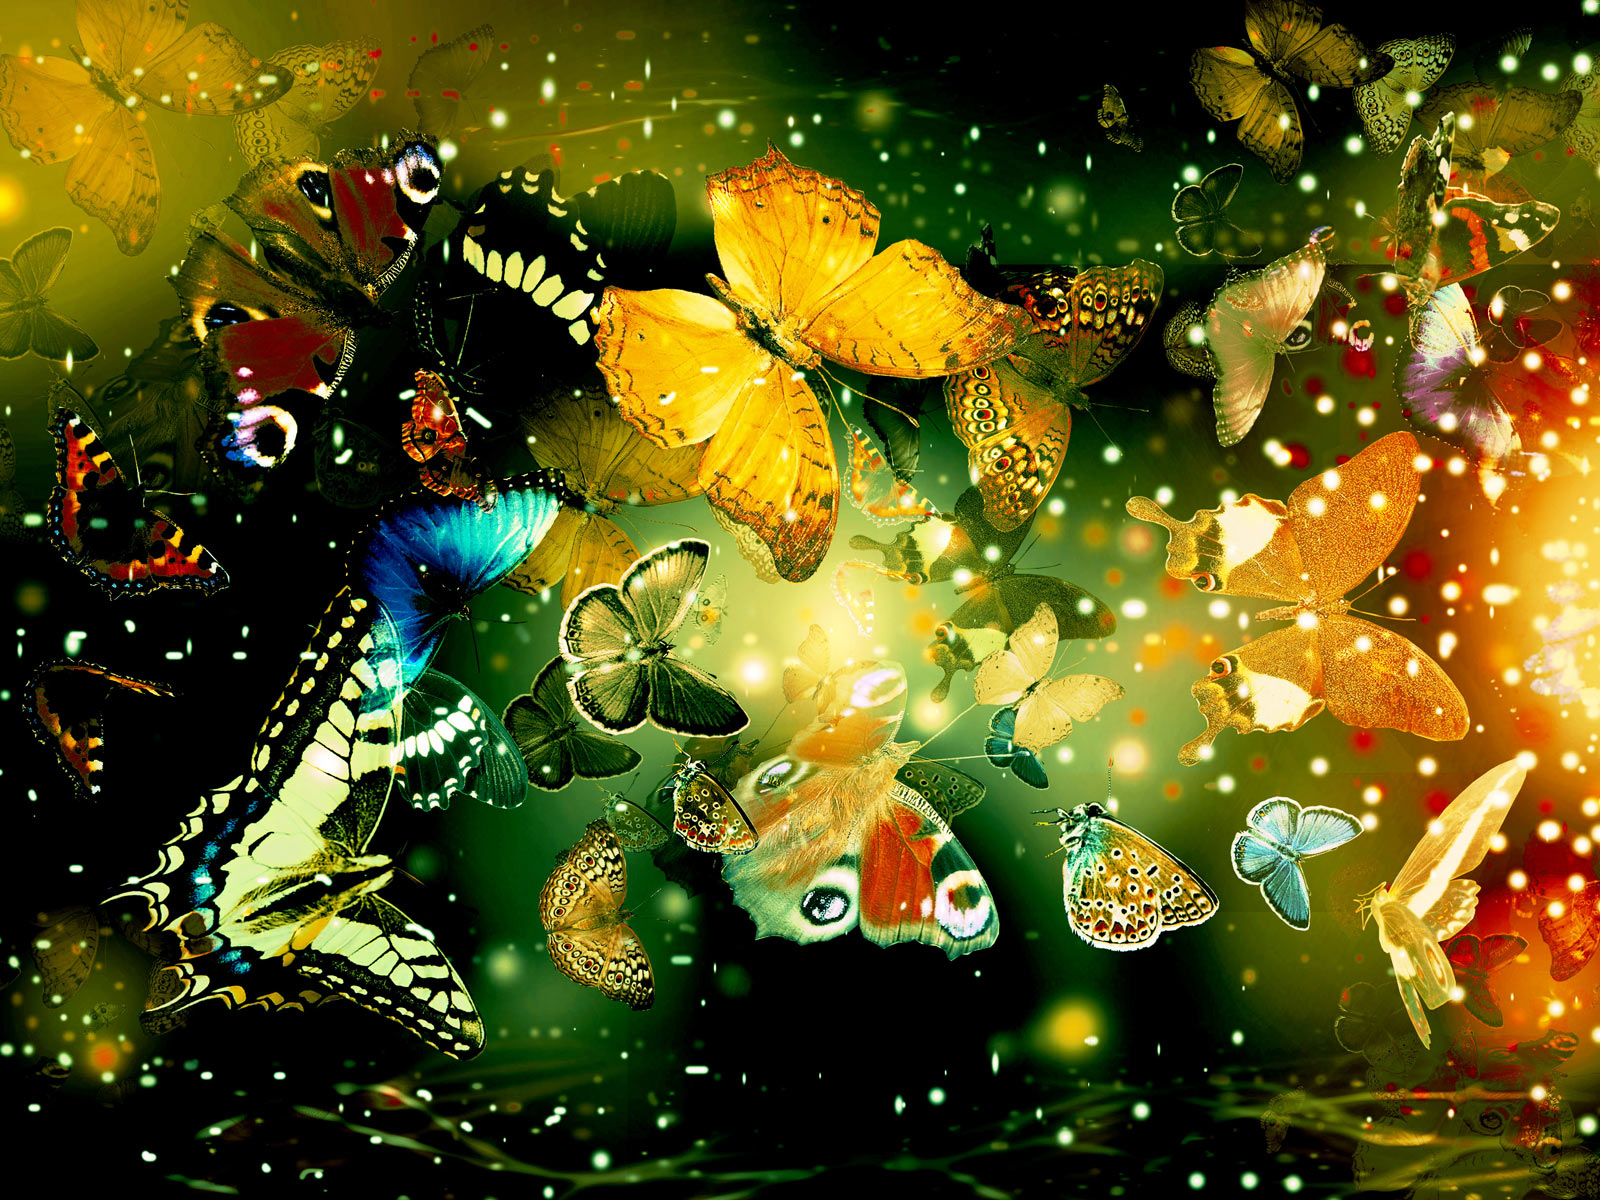 butterfly fantasy desktop wallpaper